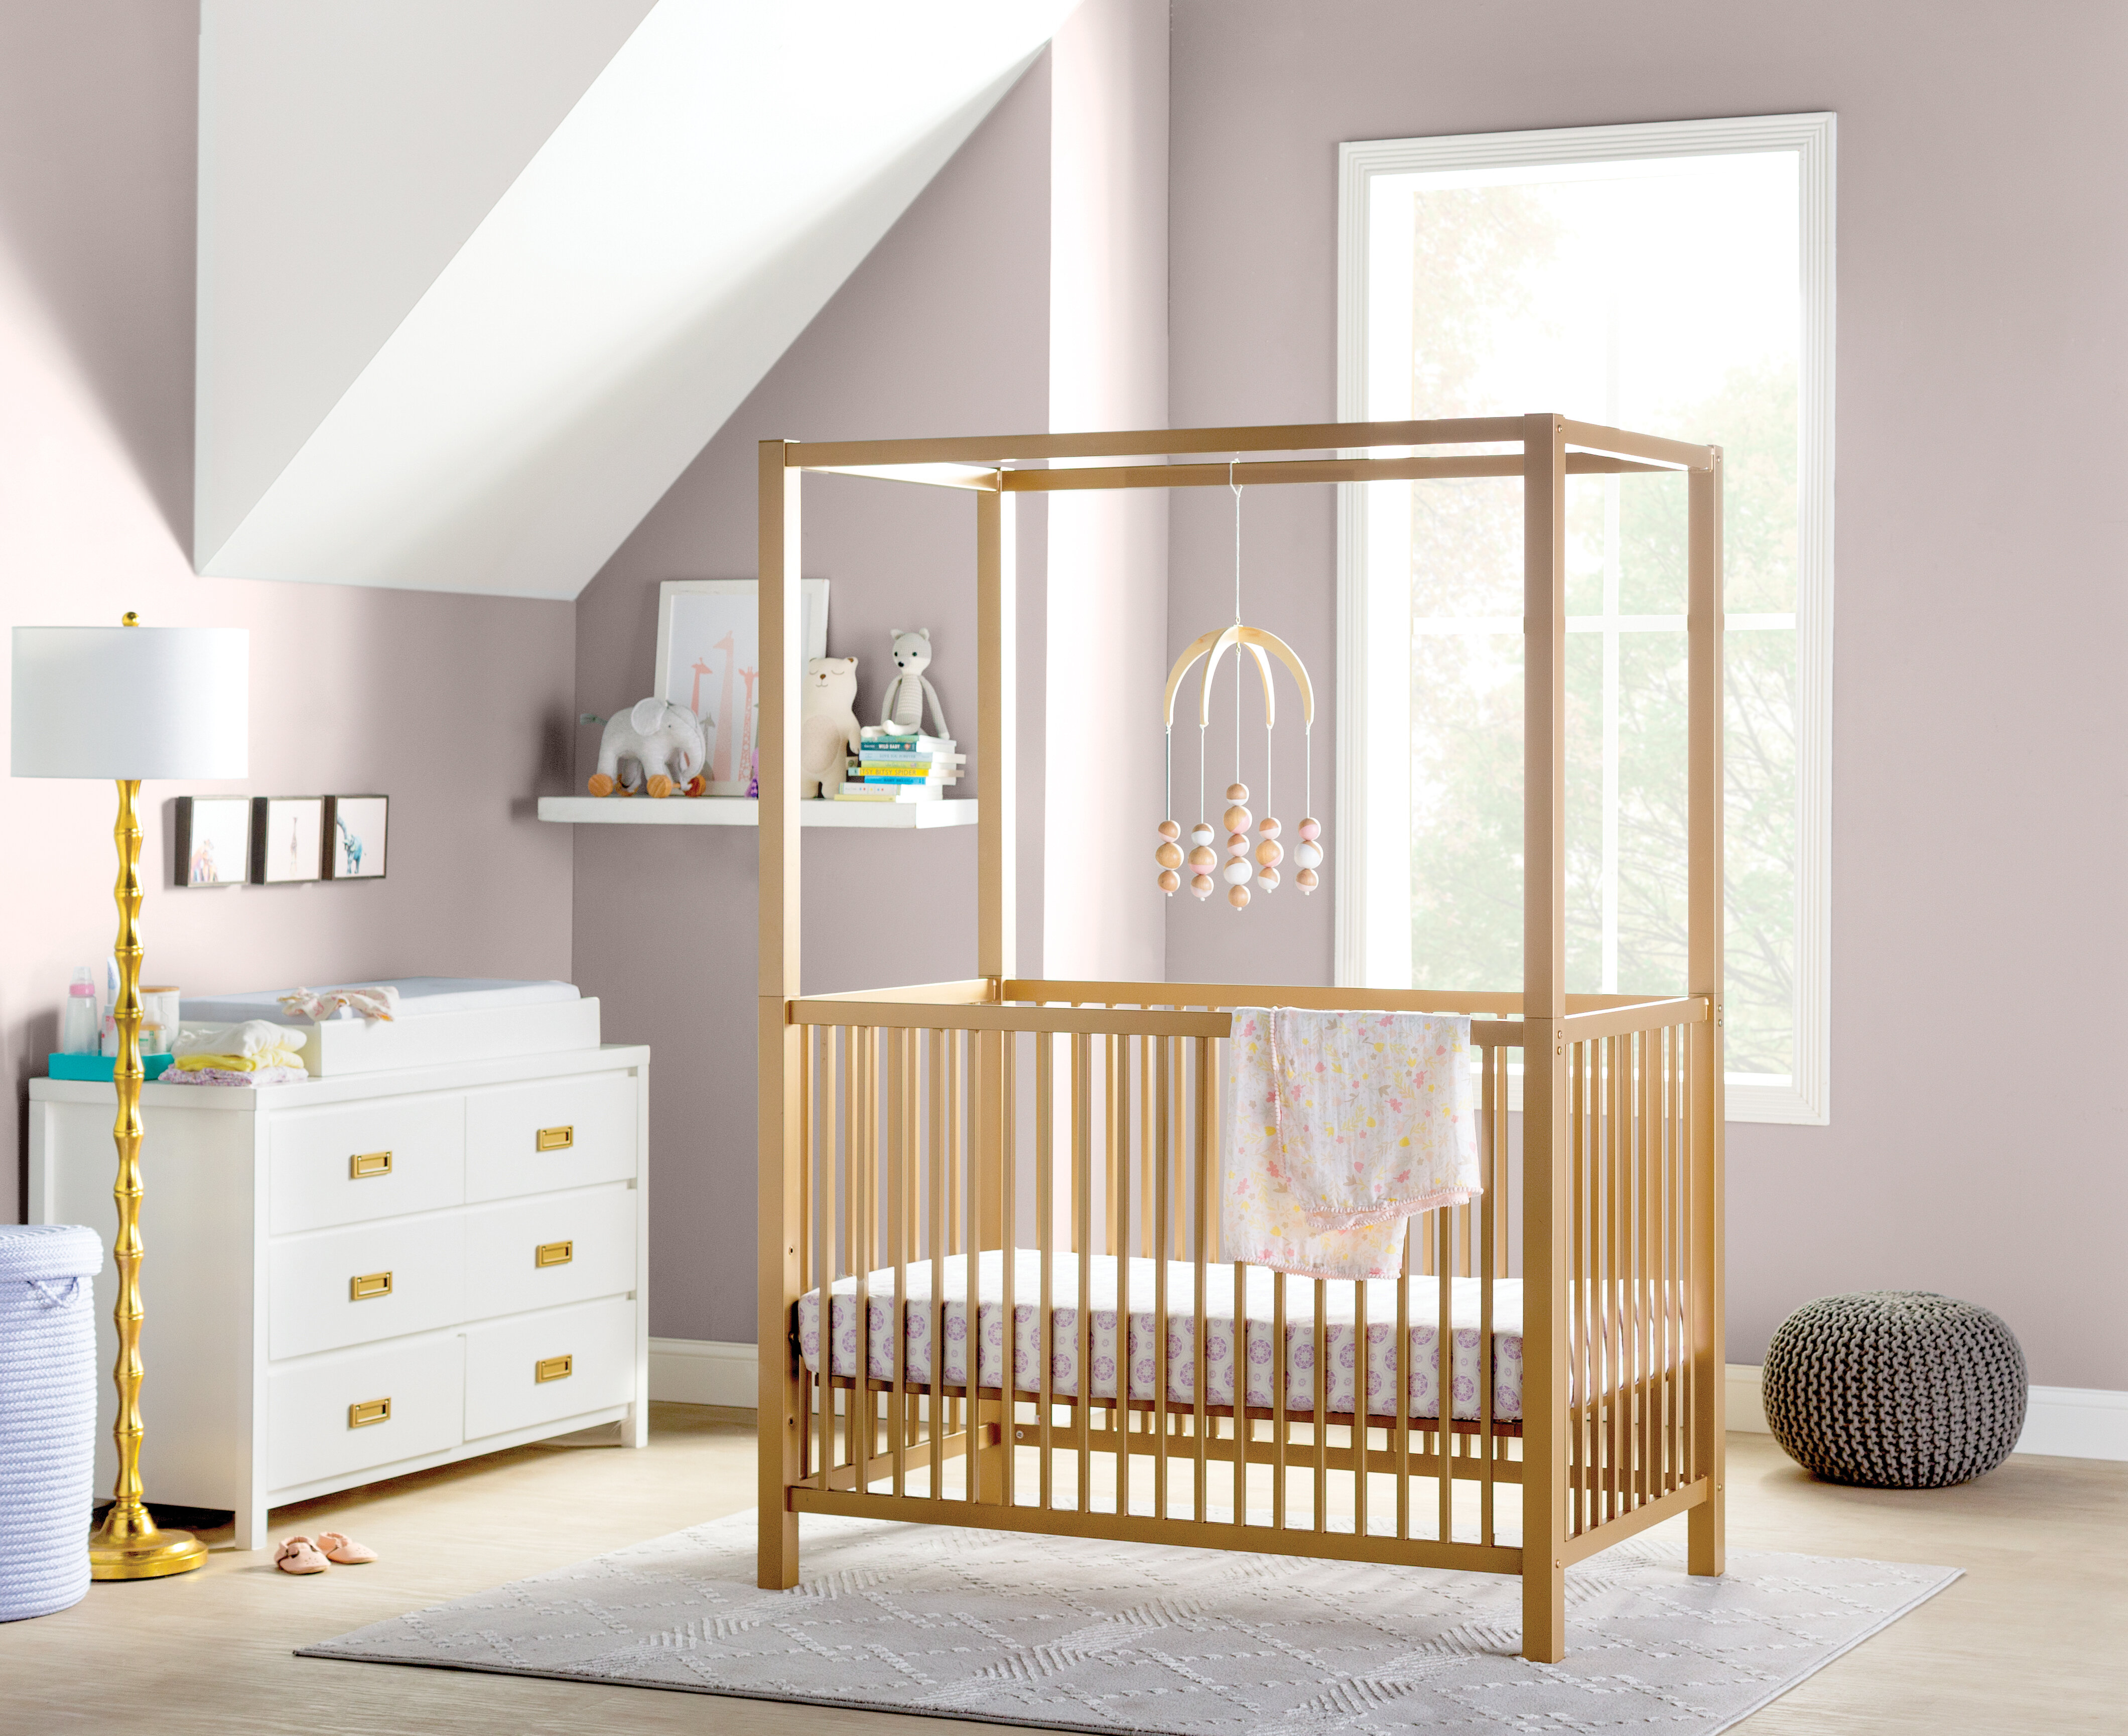 Picture of: Crib Dimensions Picking The Right Crib Size Wayfair